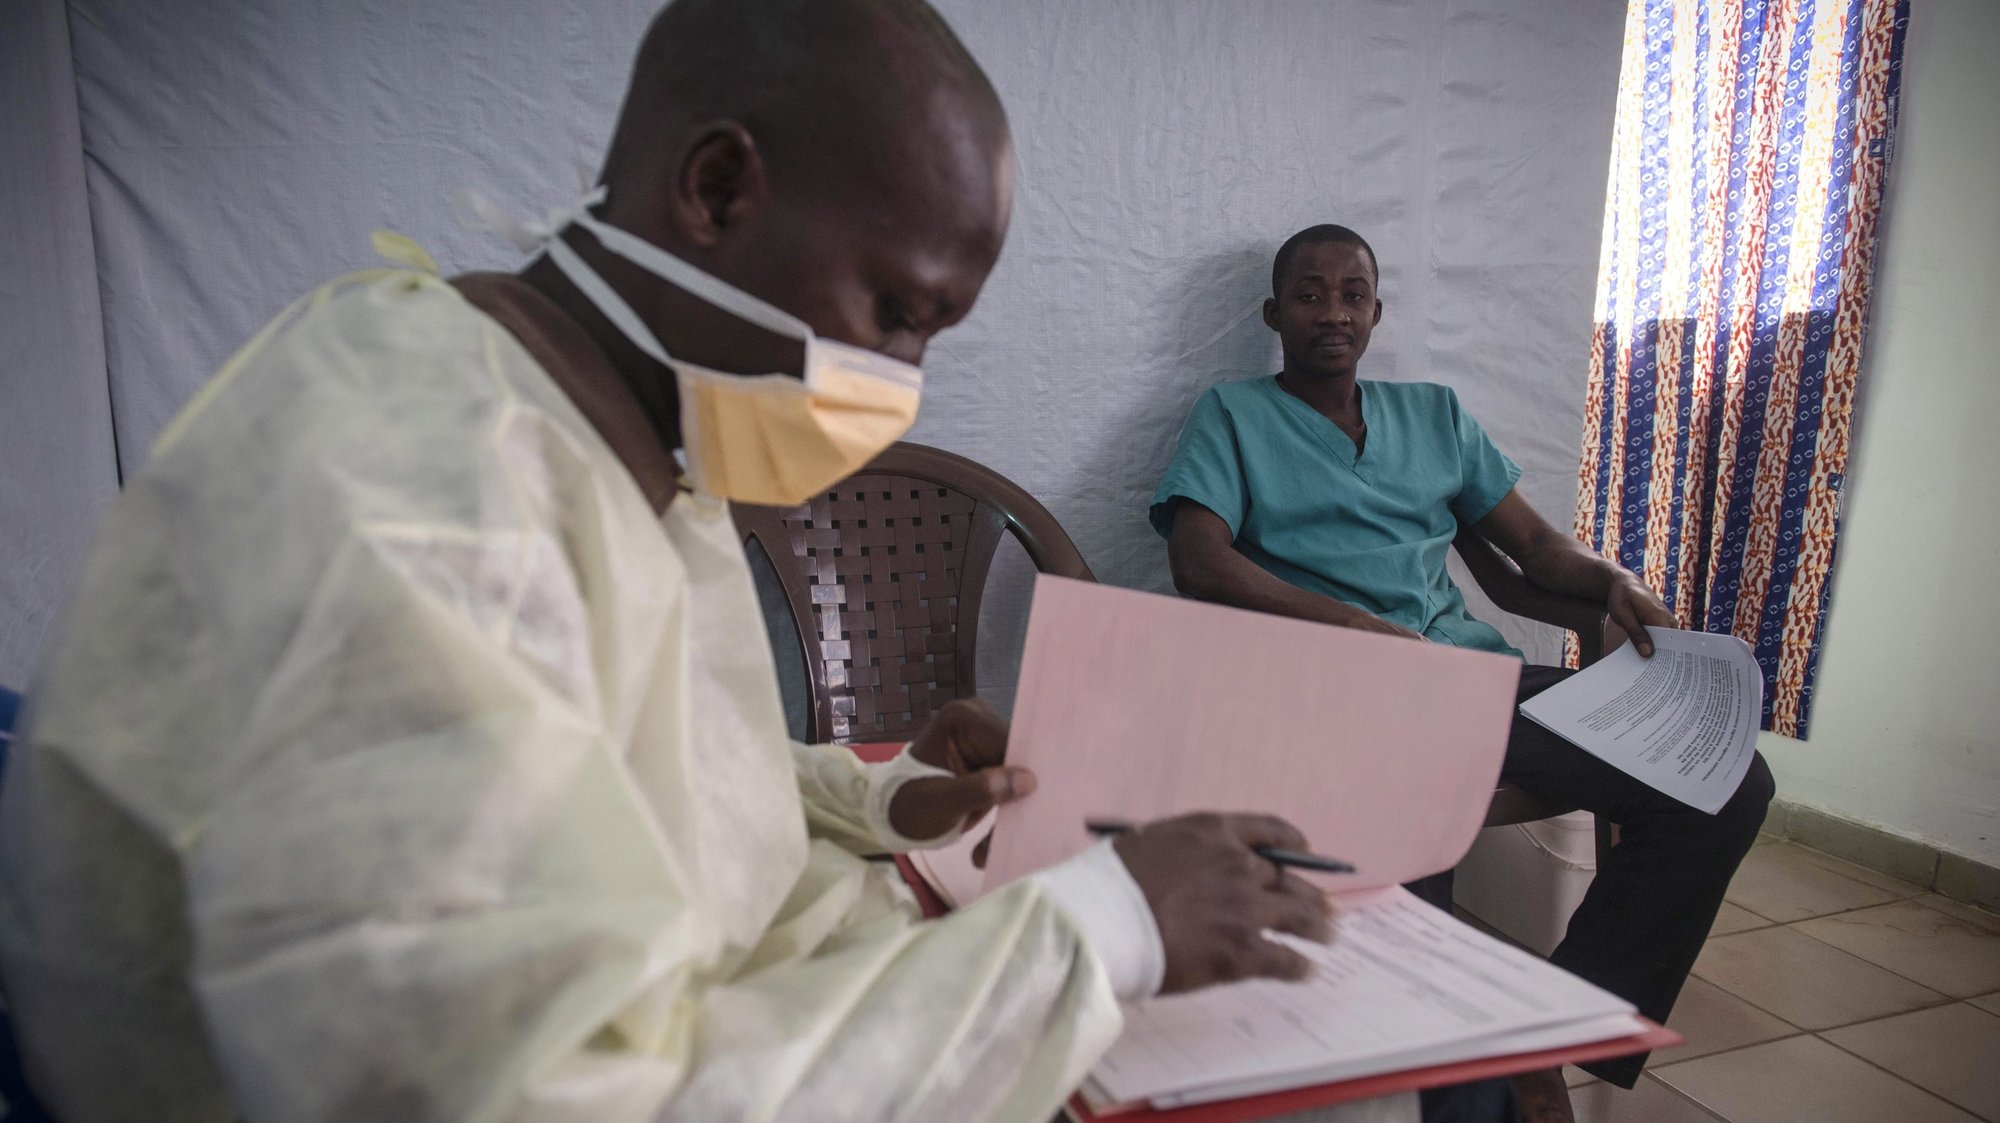 epa04868020 A handout image released by Medecins Sans Frontiers (MSF) showing a volunteer Ebola frontline worker answering a questionnaire before receiving the rVSV-EBOV experimental vaccine against Ebola at the vaccination clinic, inside Donka Hospital compound, Conakry, Guinea, 31 July 2015. A medical journal report indicates the initial trial showed success against contraction of the virus in test group who had confirmed exposure to infected persons and were given the vaccine immediately while amongst another group given the vaccine after a 10-day delay showed more than a dozen cases.  EPA/YANN LIBESSART / MSF / HANDOUT  HANDOUT EDITORIAL USE ONLY/NO SALES